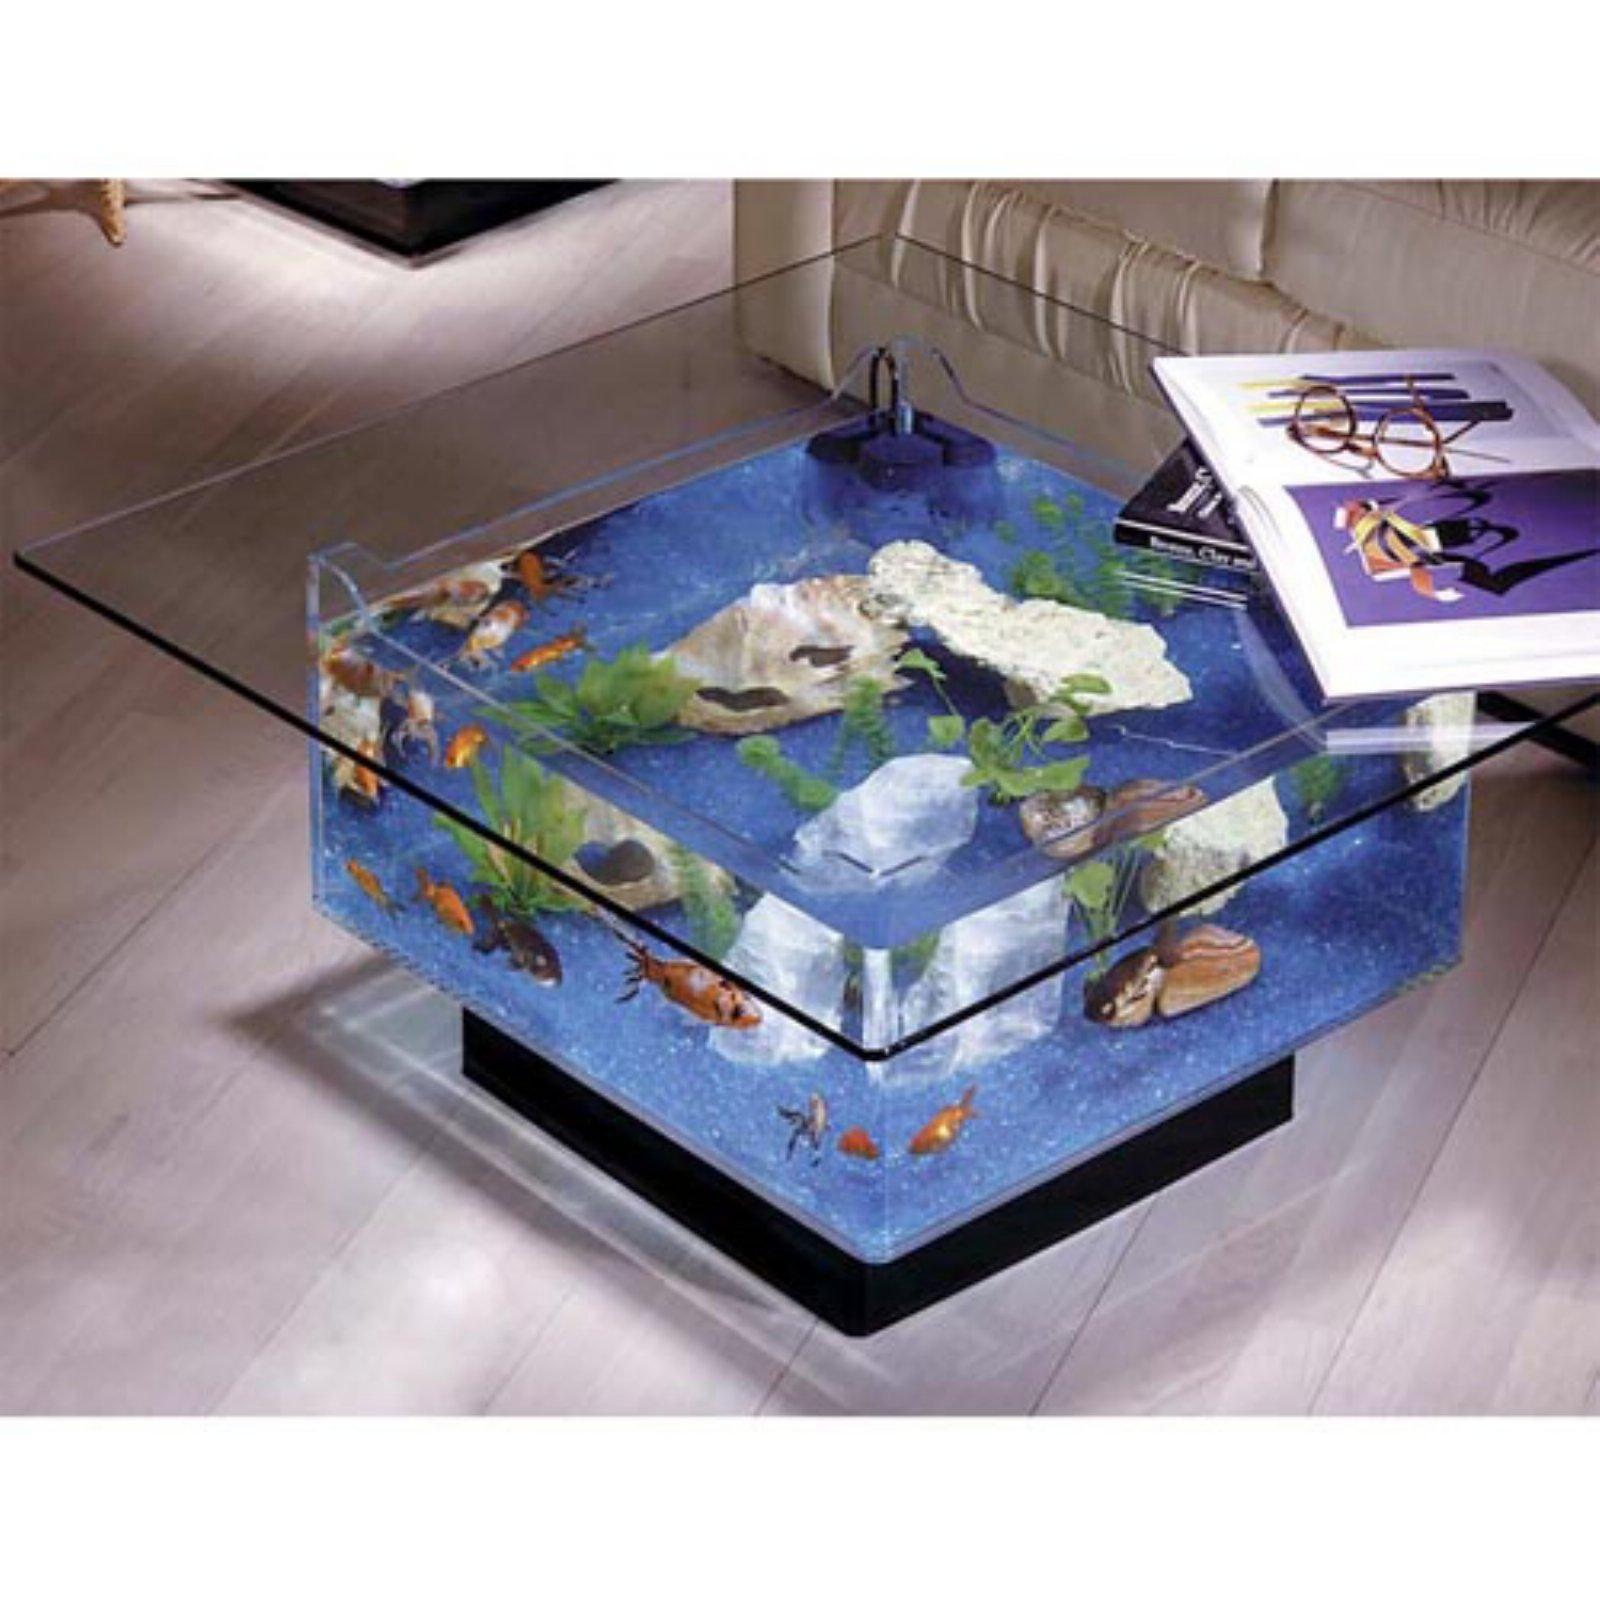 Aqua Square Coffee Table 25 Gallon Aquarium Walmartcom